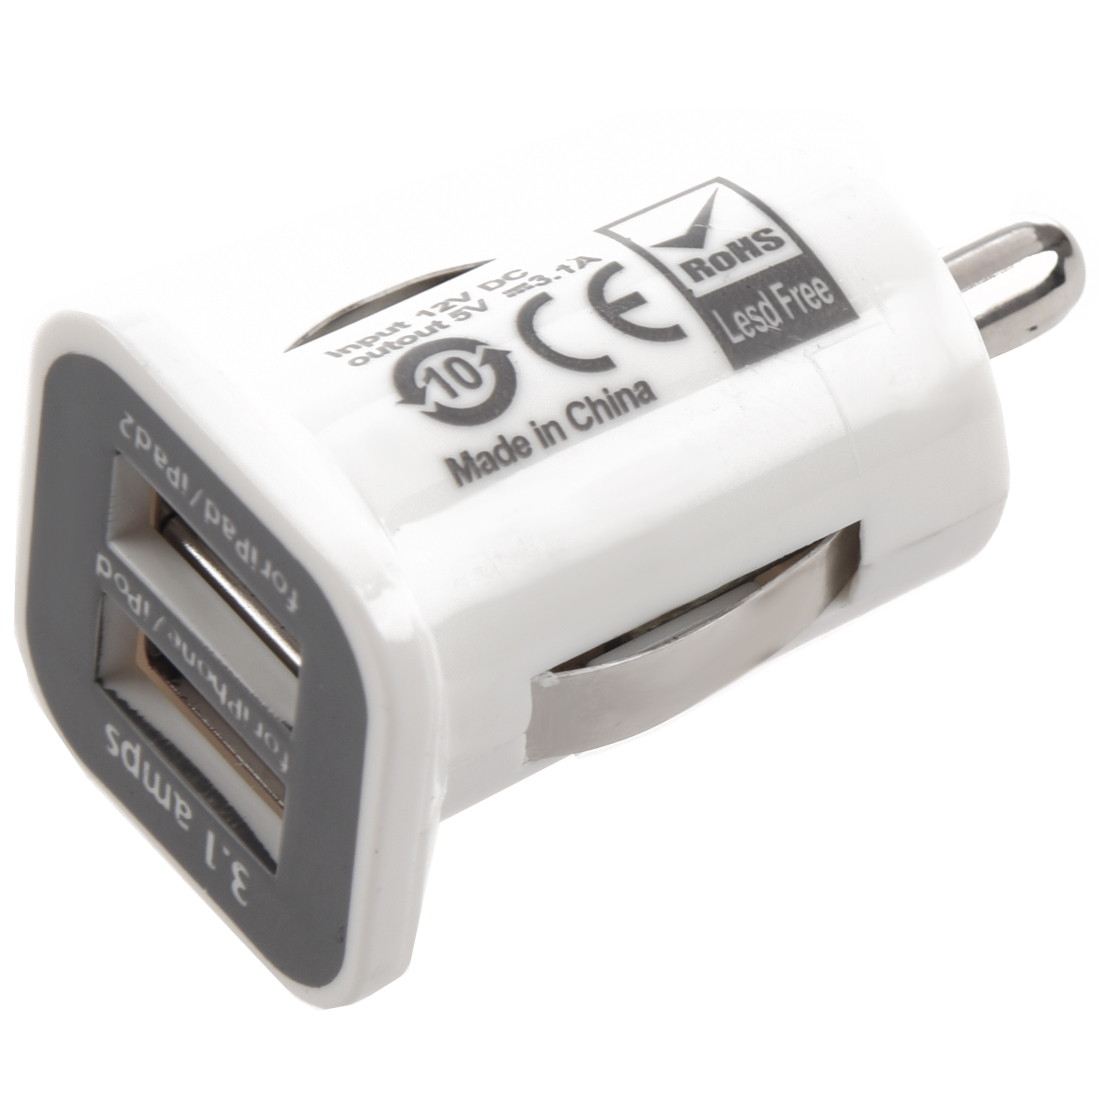 White 3 1a Dual Usb Car Charger Adapter For Ipad Ipad2